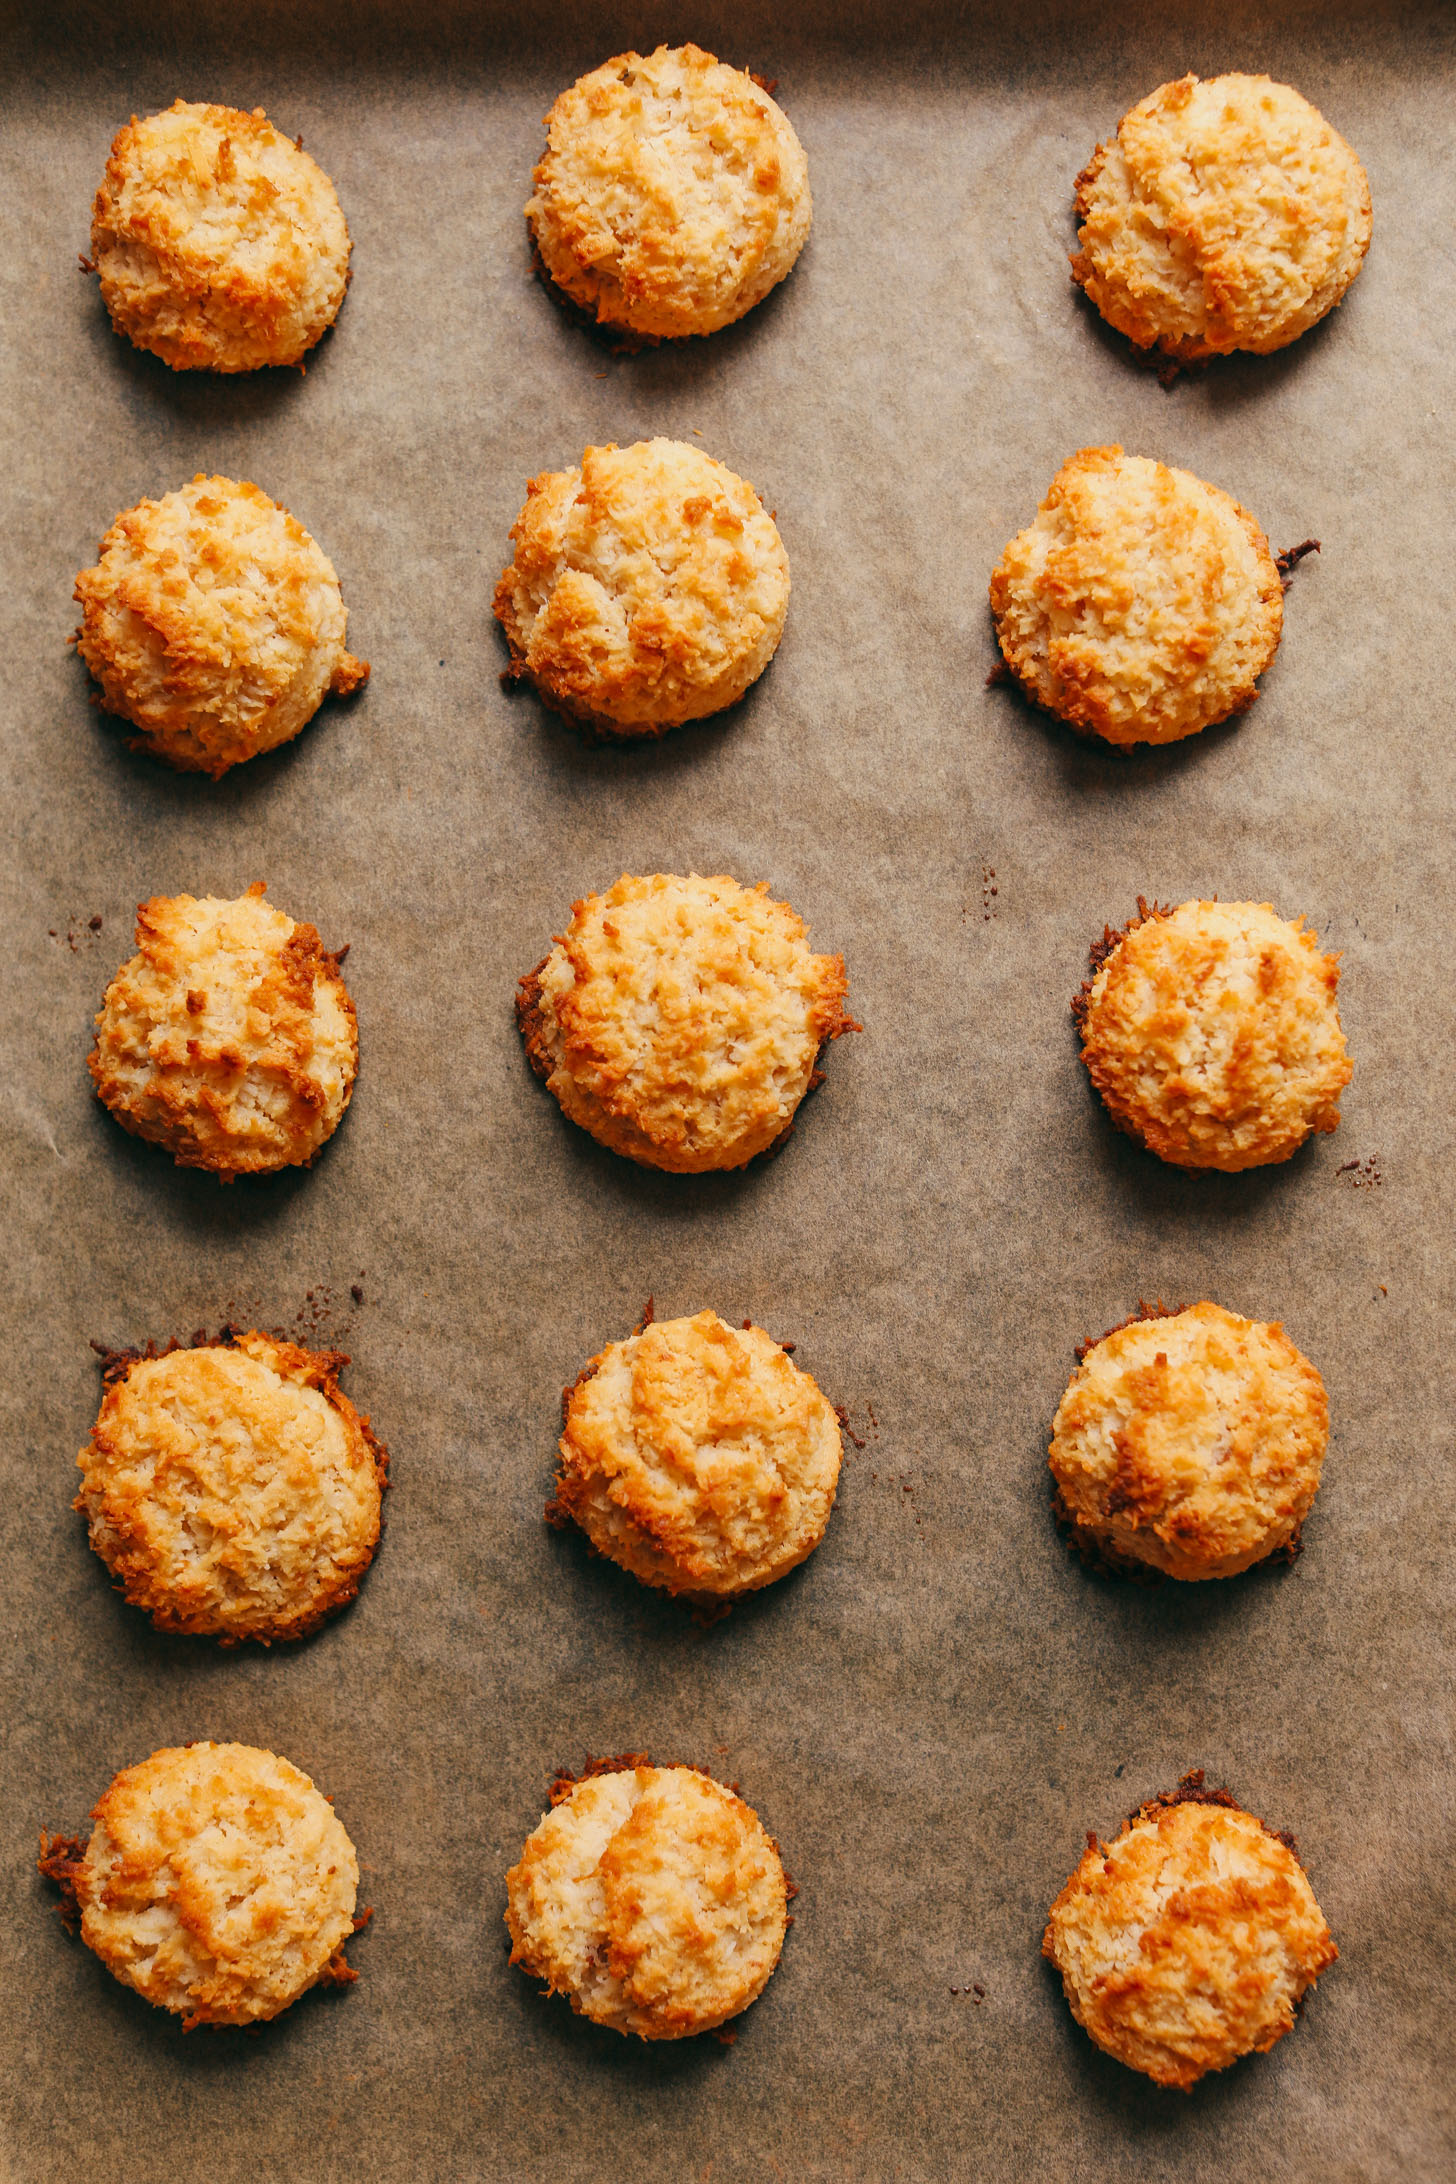 Freshly baked Crispy Vegan Macaroons on a parchment-lined baking sheet